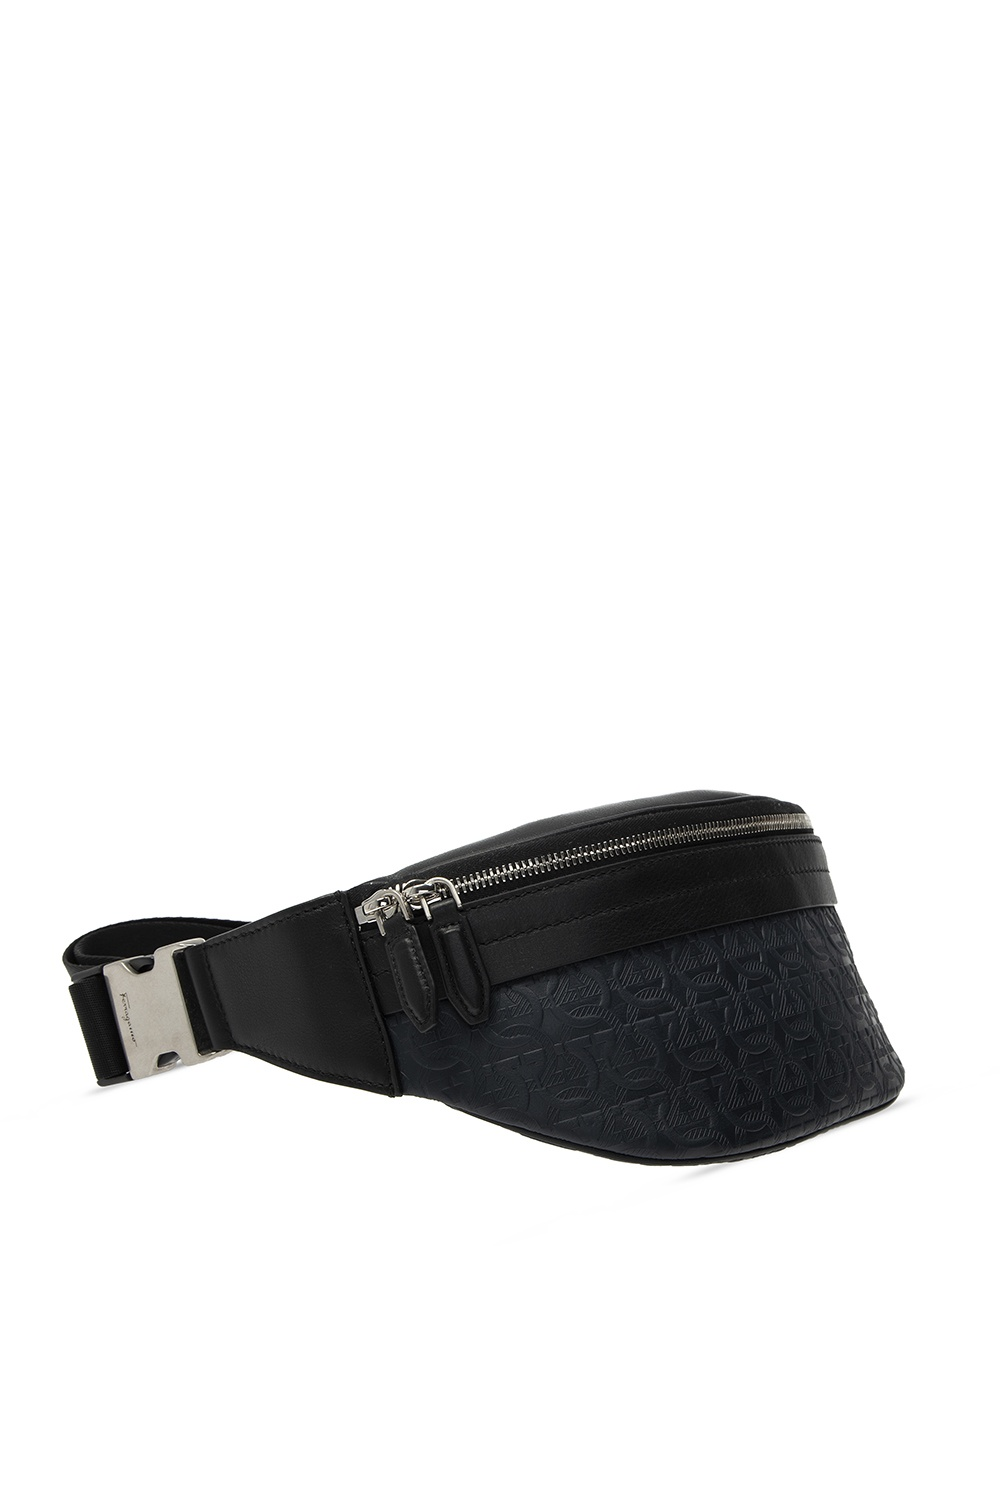 Salvatore Ferragamo Belt bag with logo